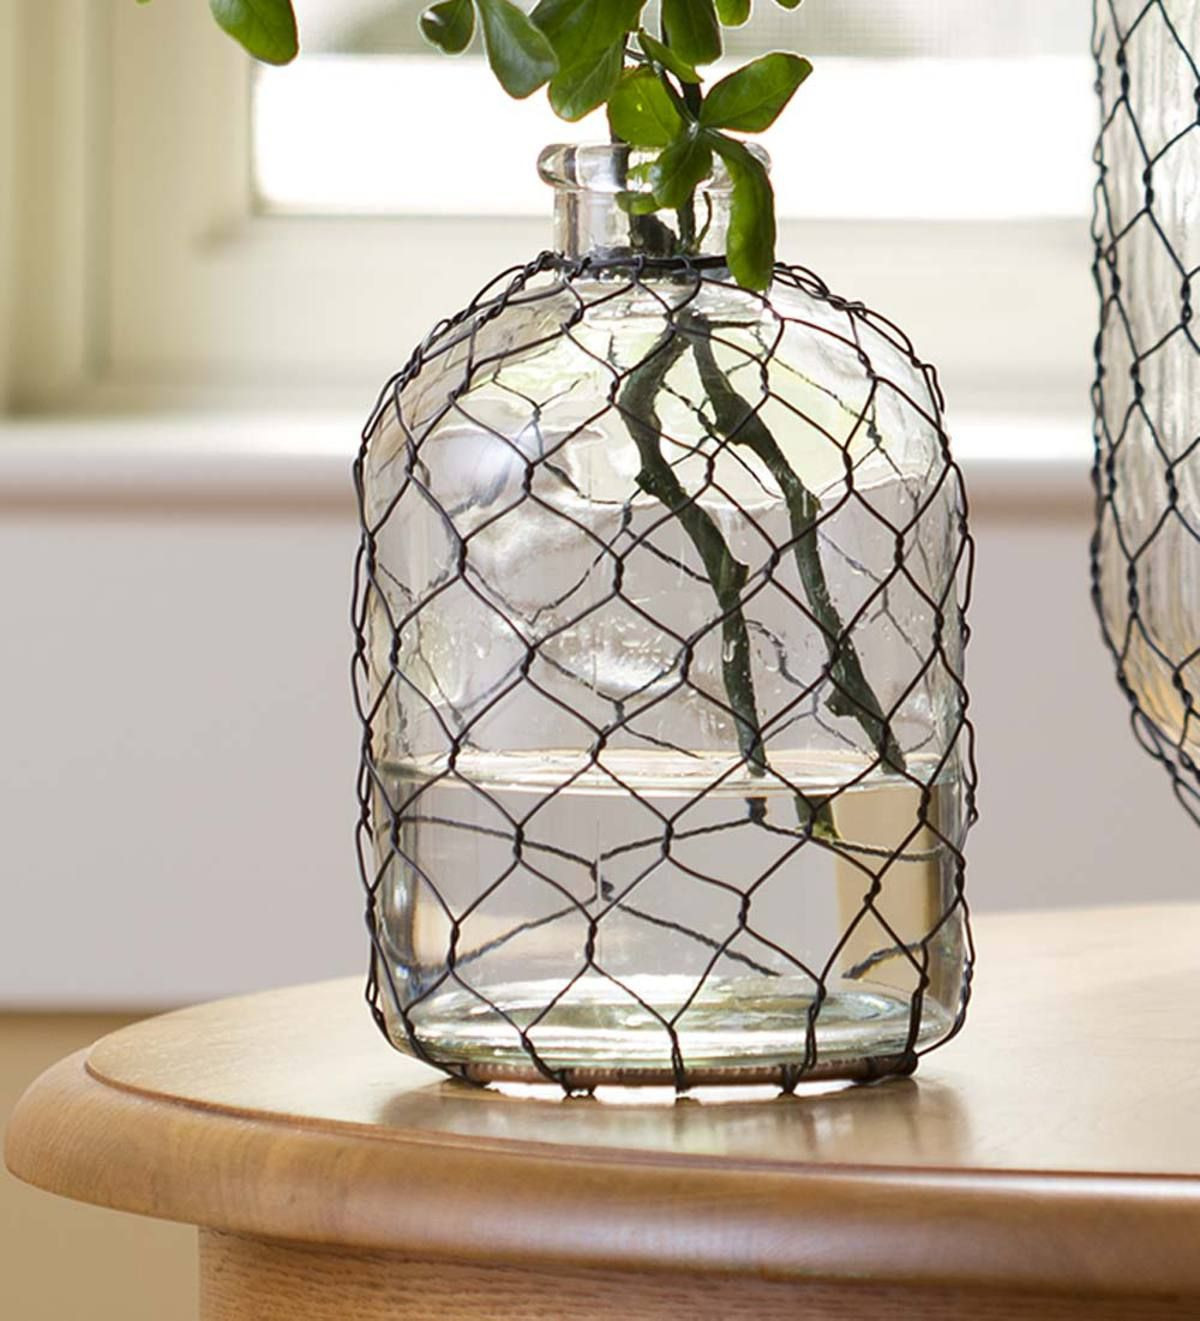 nautical glass vases of our small chicken wire glass vase is an updated take on a vintage inside our small chicken wire glass vase is an updated take on a vintage design classic